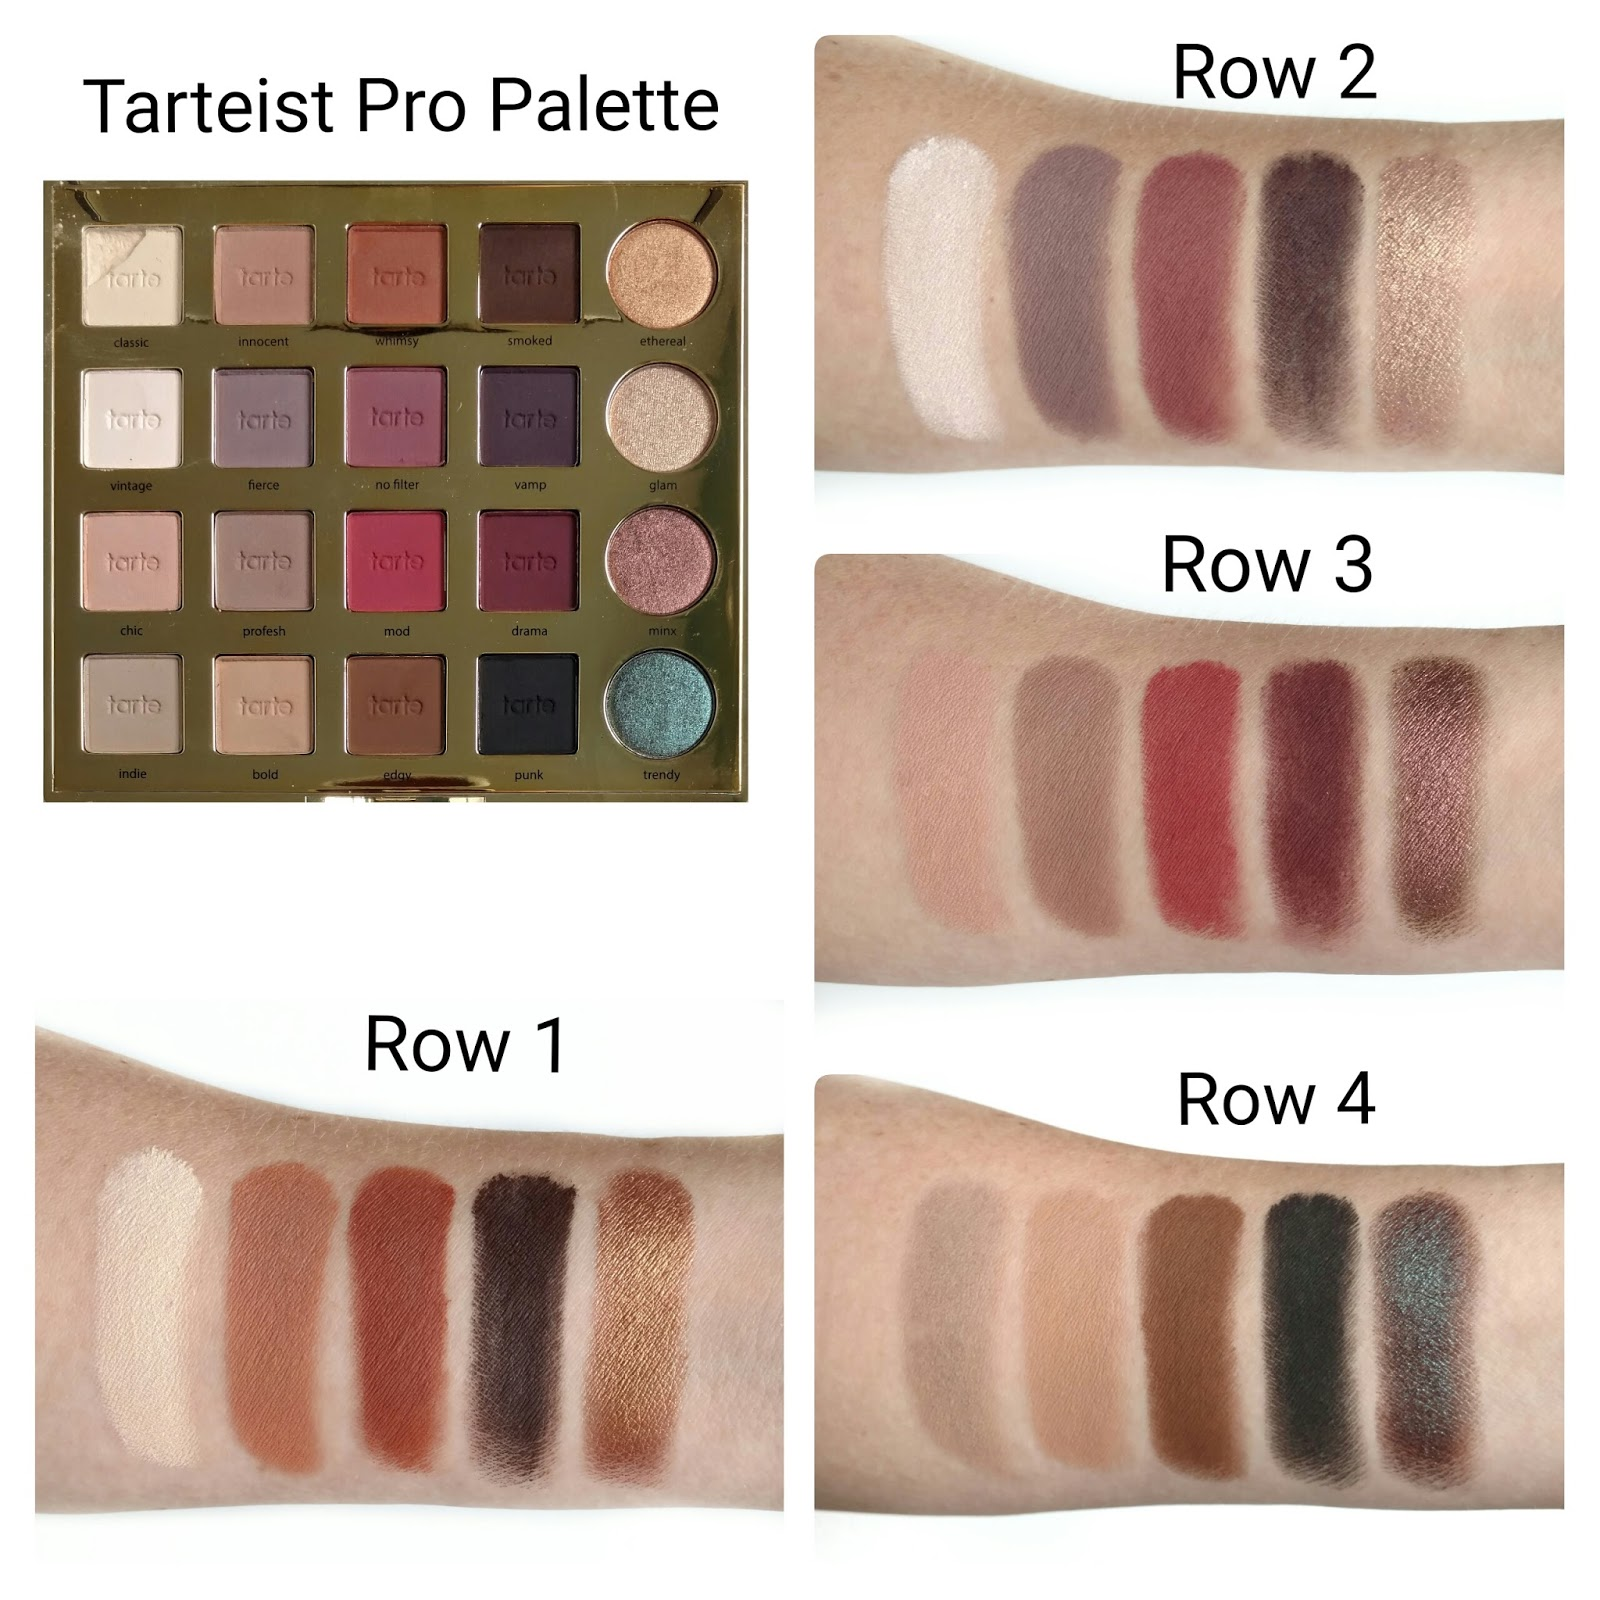 Tarte Tarteist Pro Palette Review | First Impression | The Budget ...